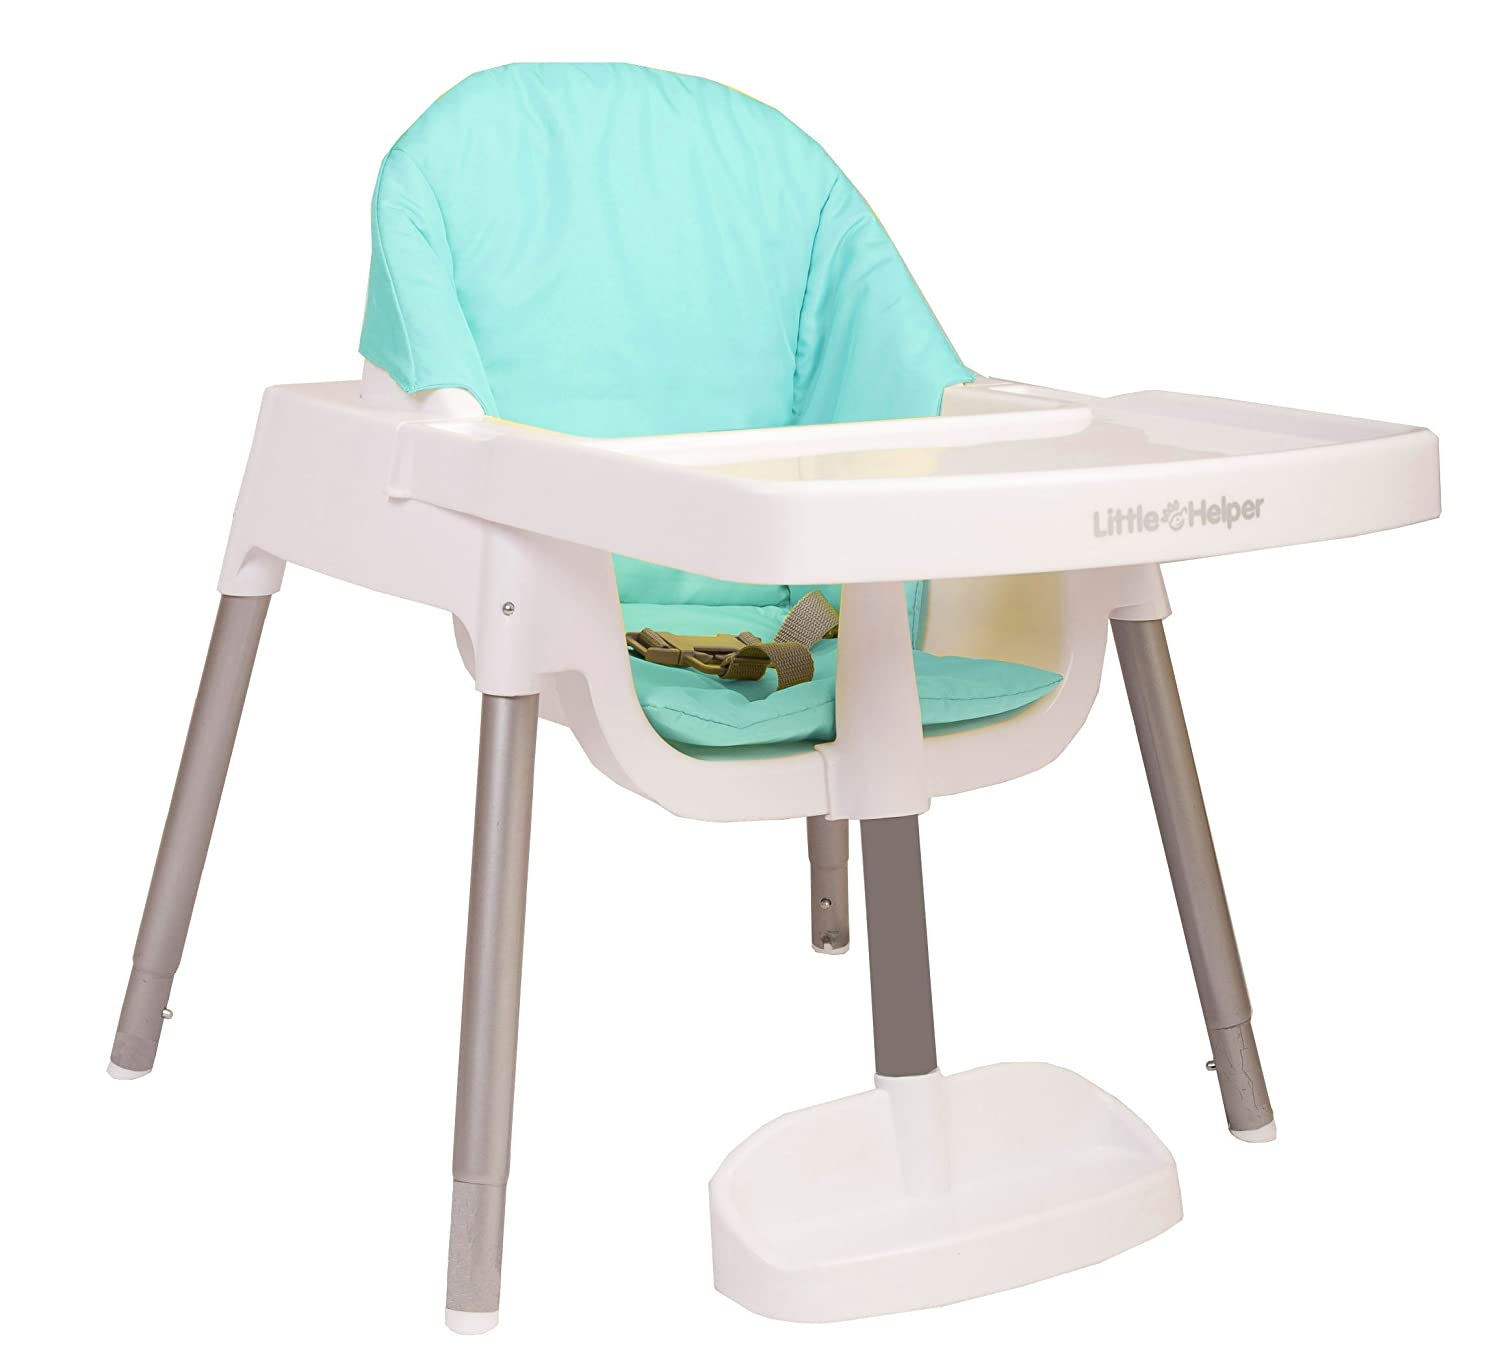 Little Helper Baby Highchair converts to low chair in  : 71SjwrF7fDLSL1500 Desk Chairs <strong>for Teens</strong> from www.hotukdeals.com size 1500 x 1365 jpeg 100kB